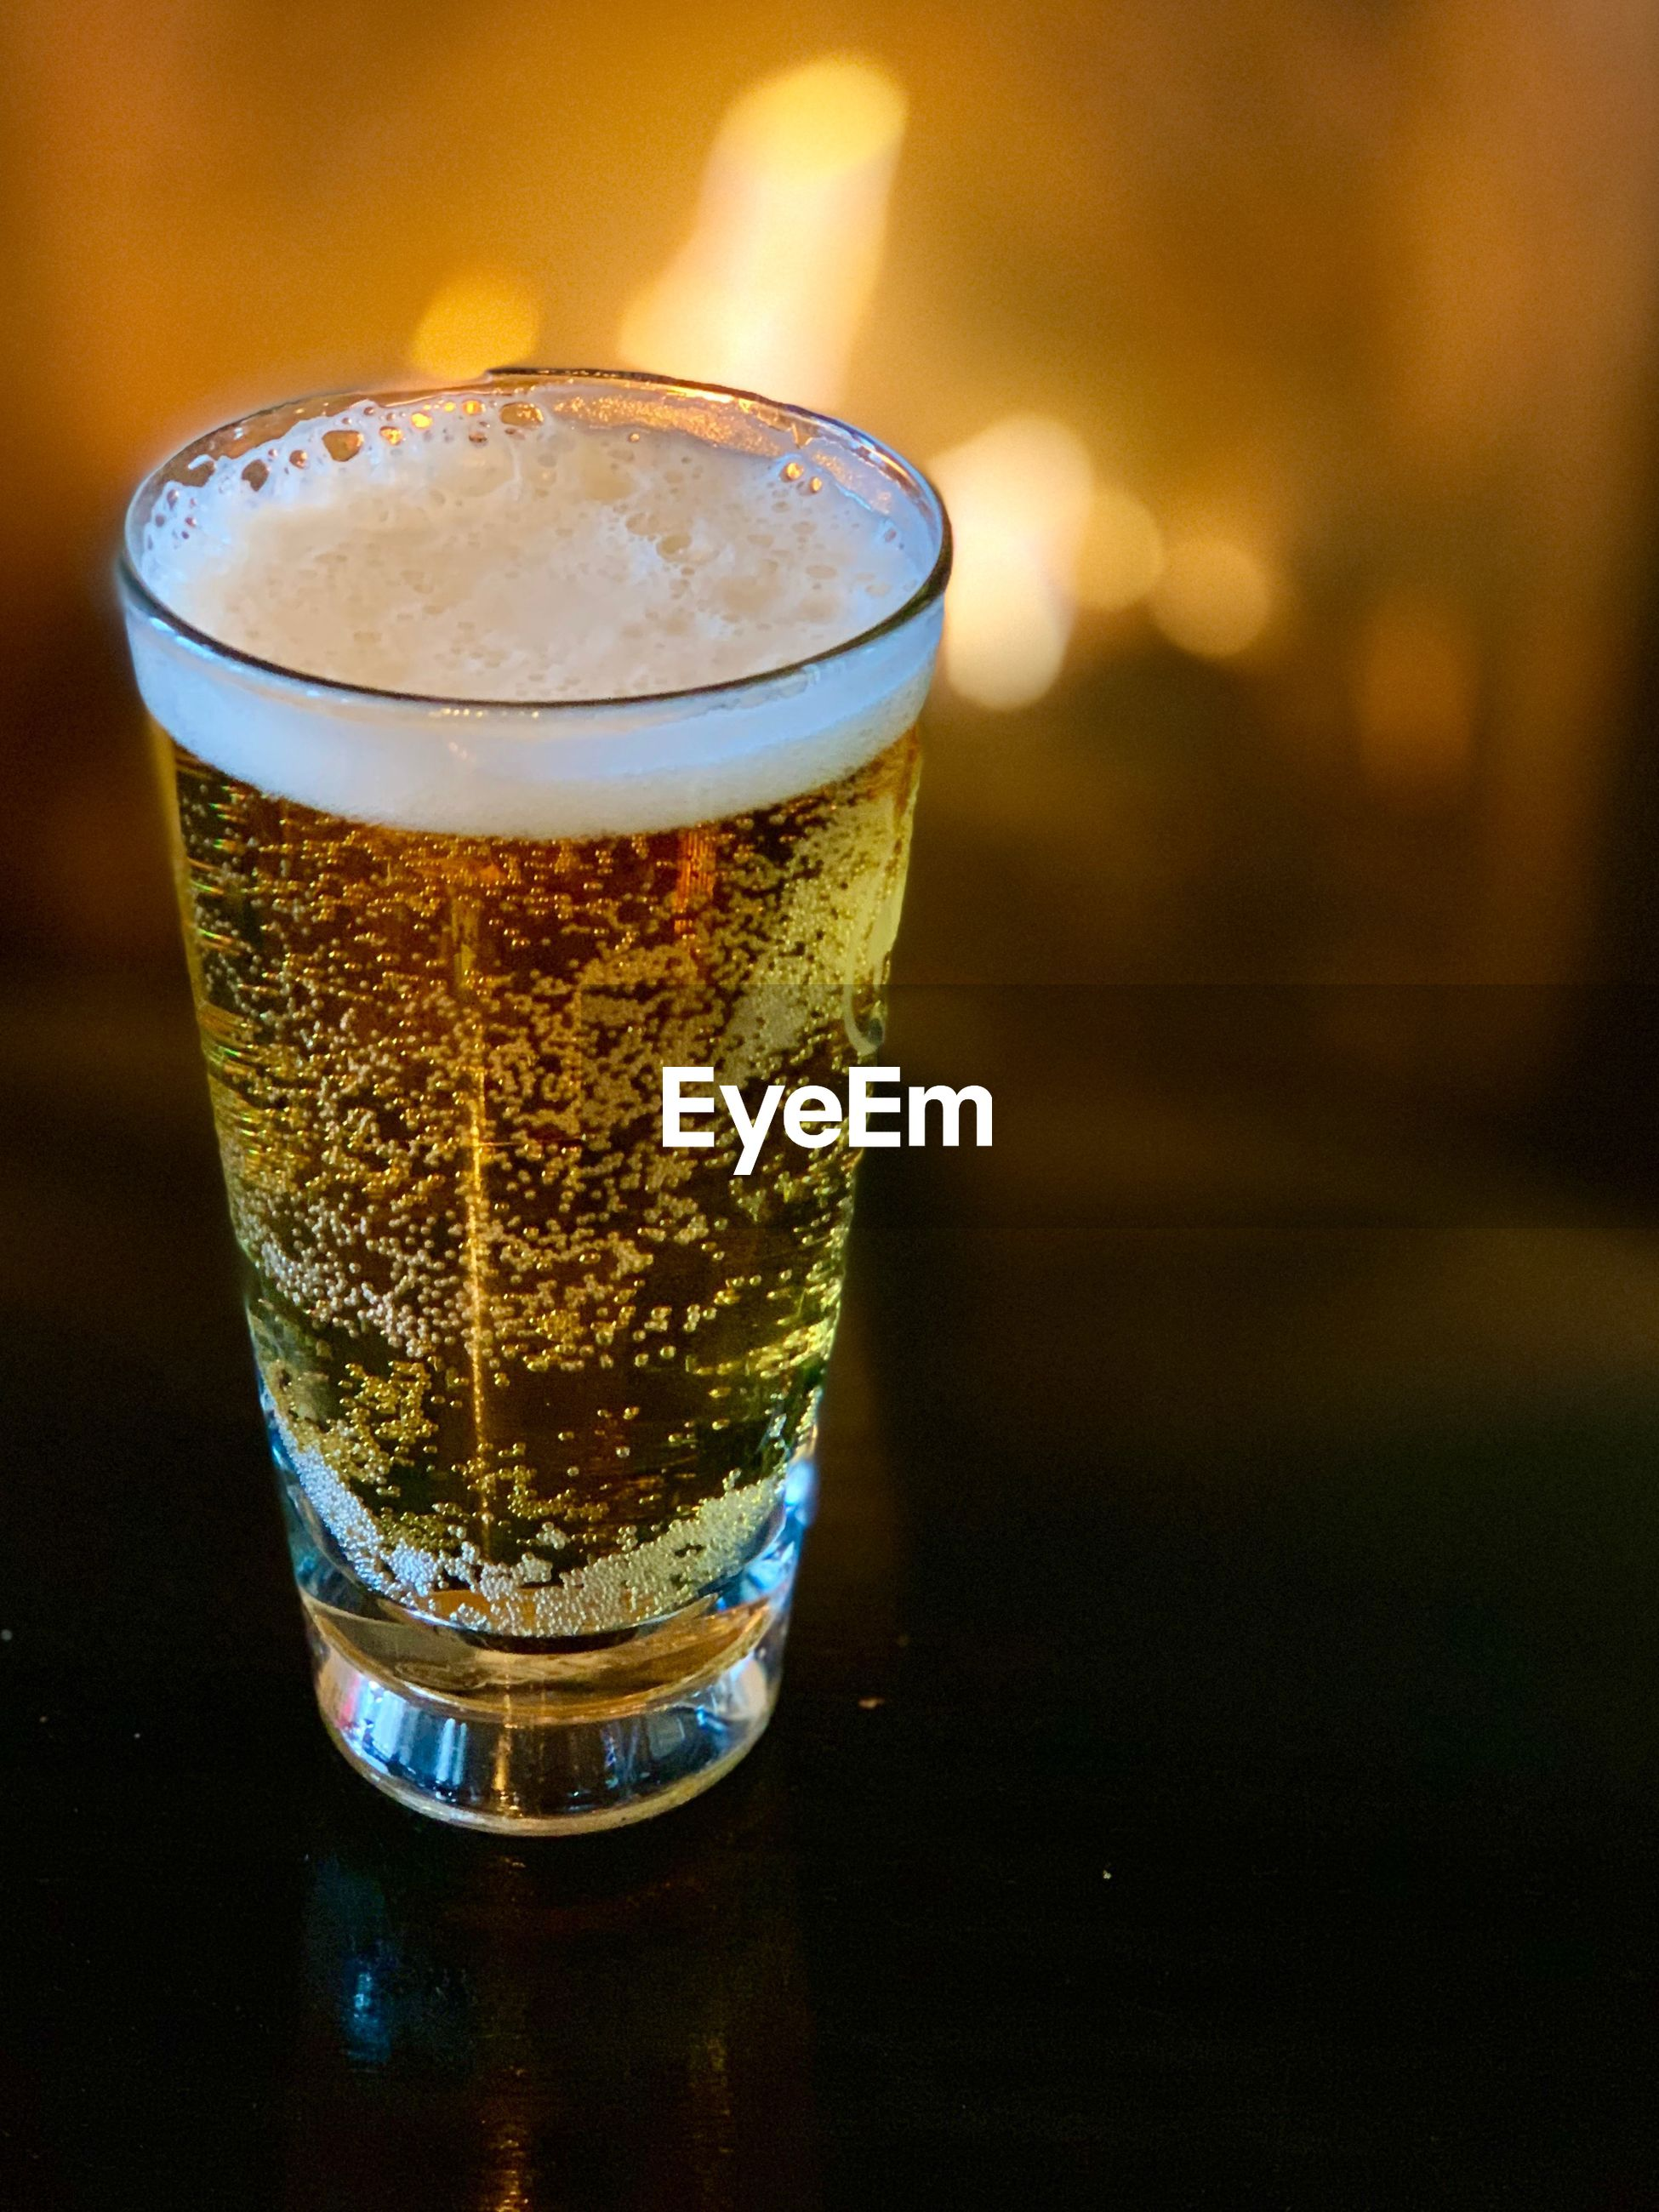 CLOSE-UP OF GLASS OF BEER ON TABLE